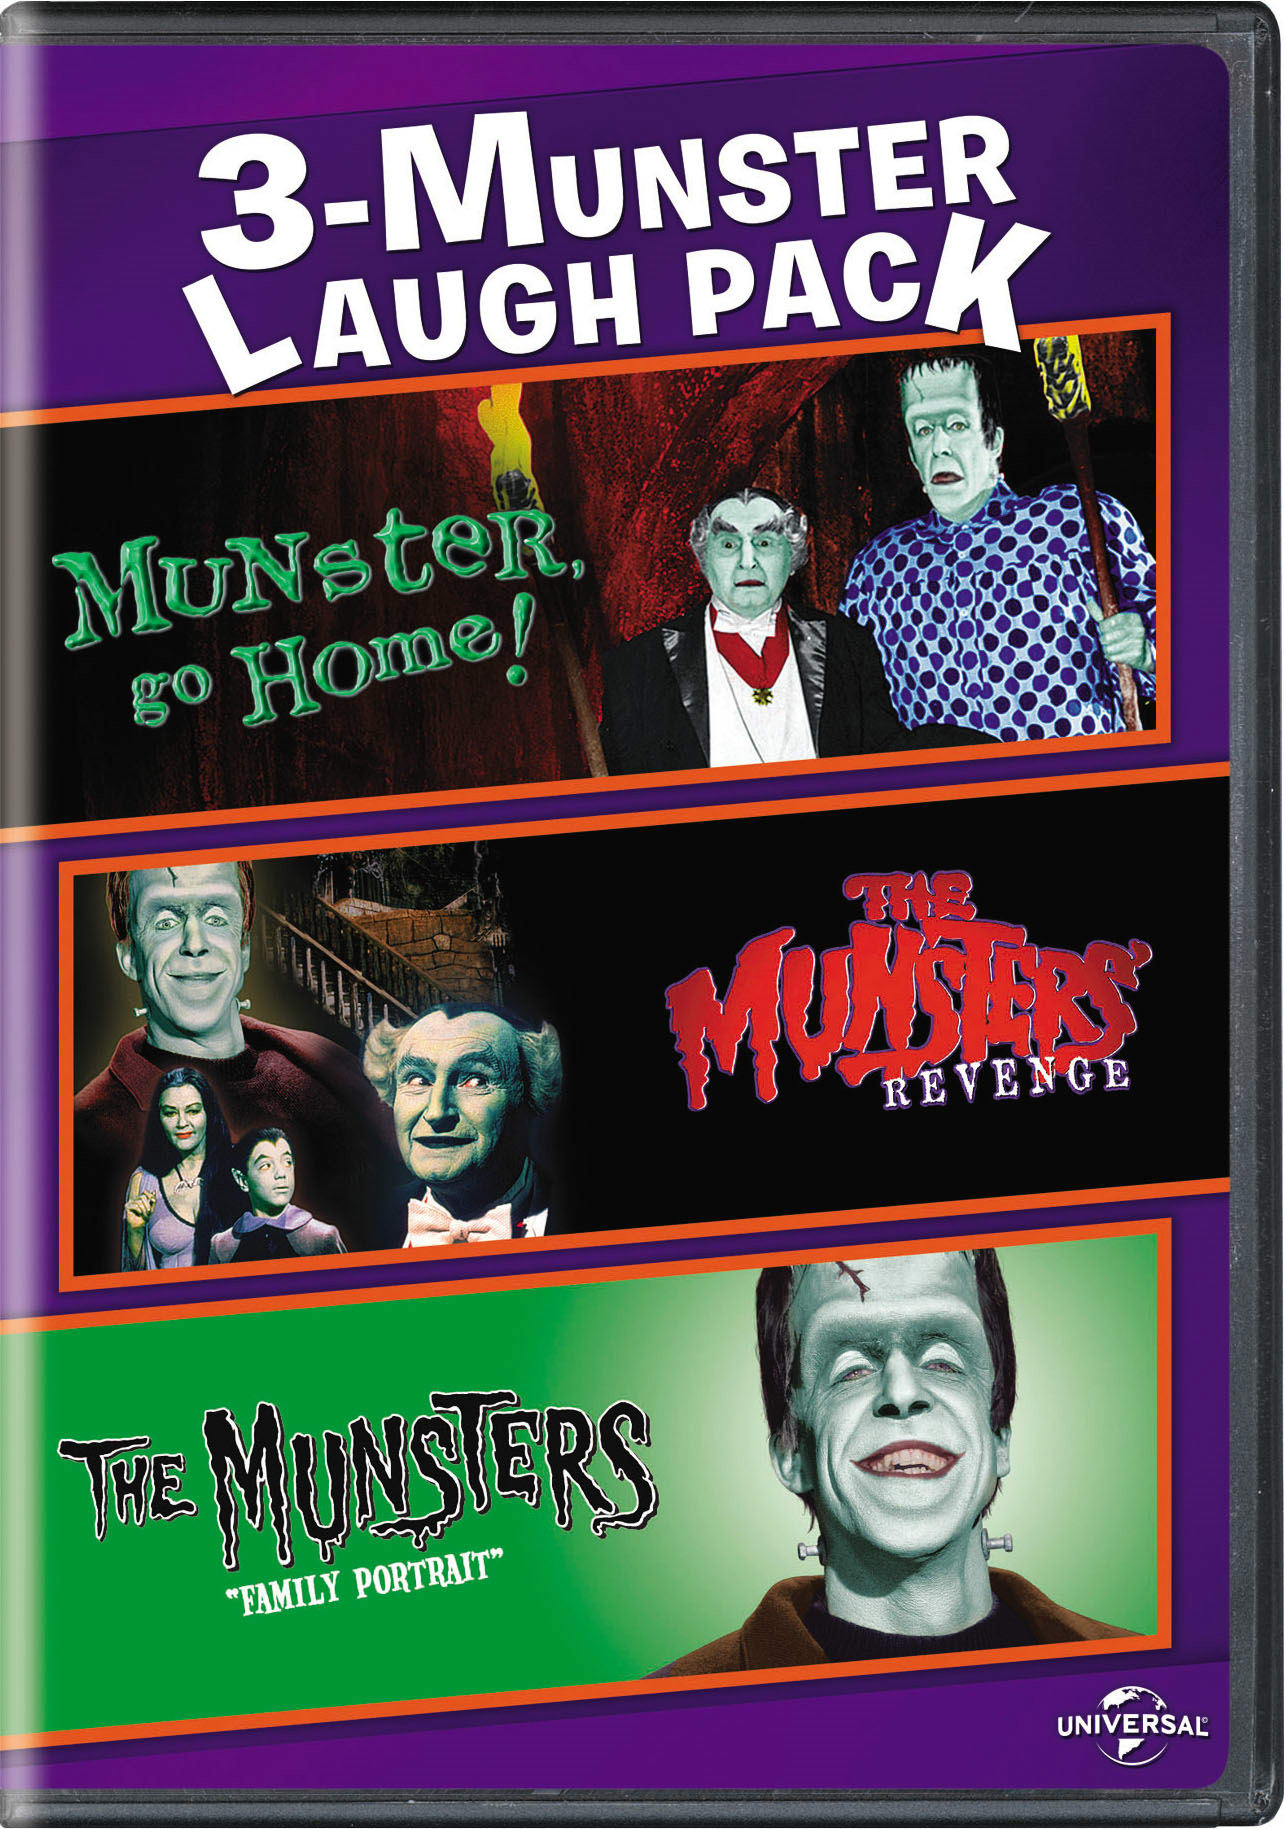 Munster, Go Home!/The Munsters' Revenge/The Munsters:... [DVD]